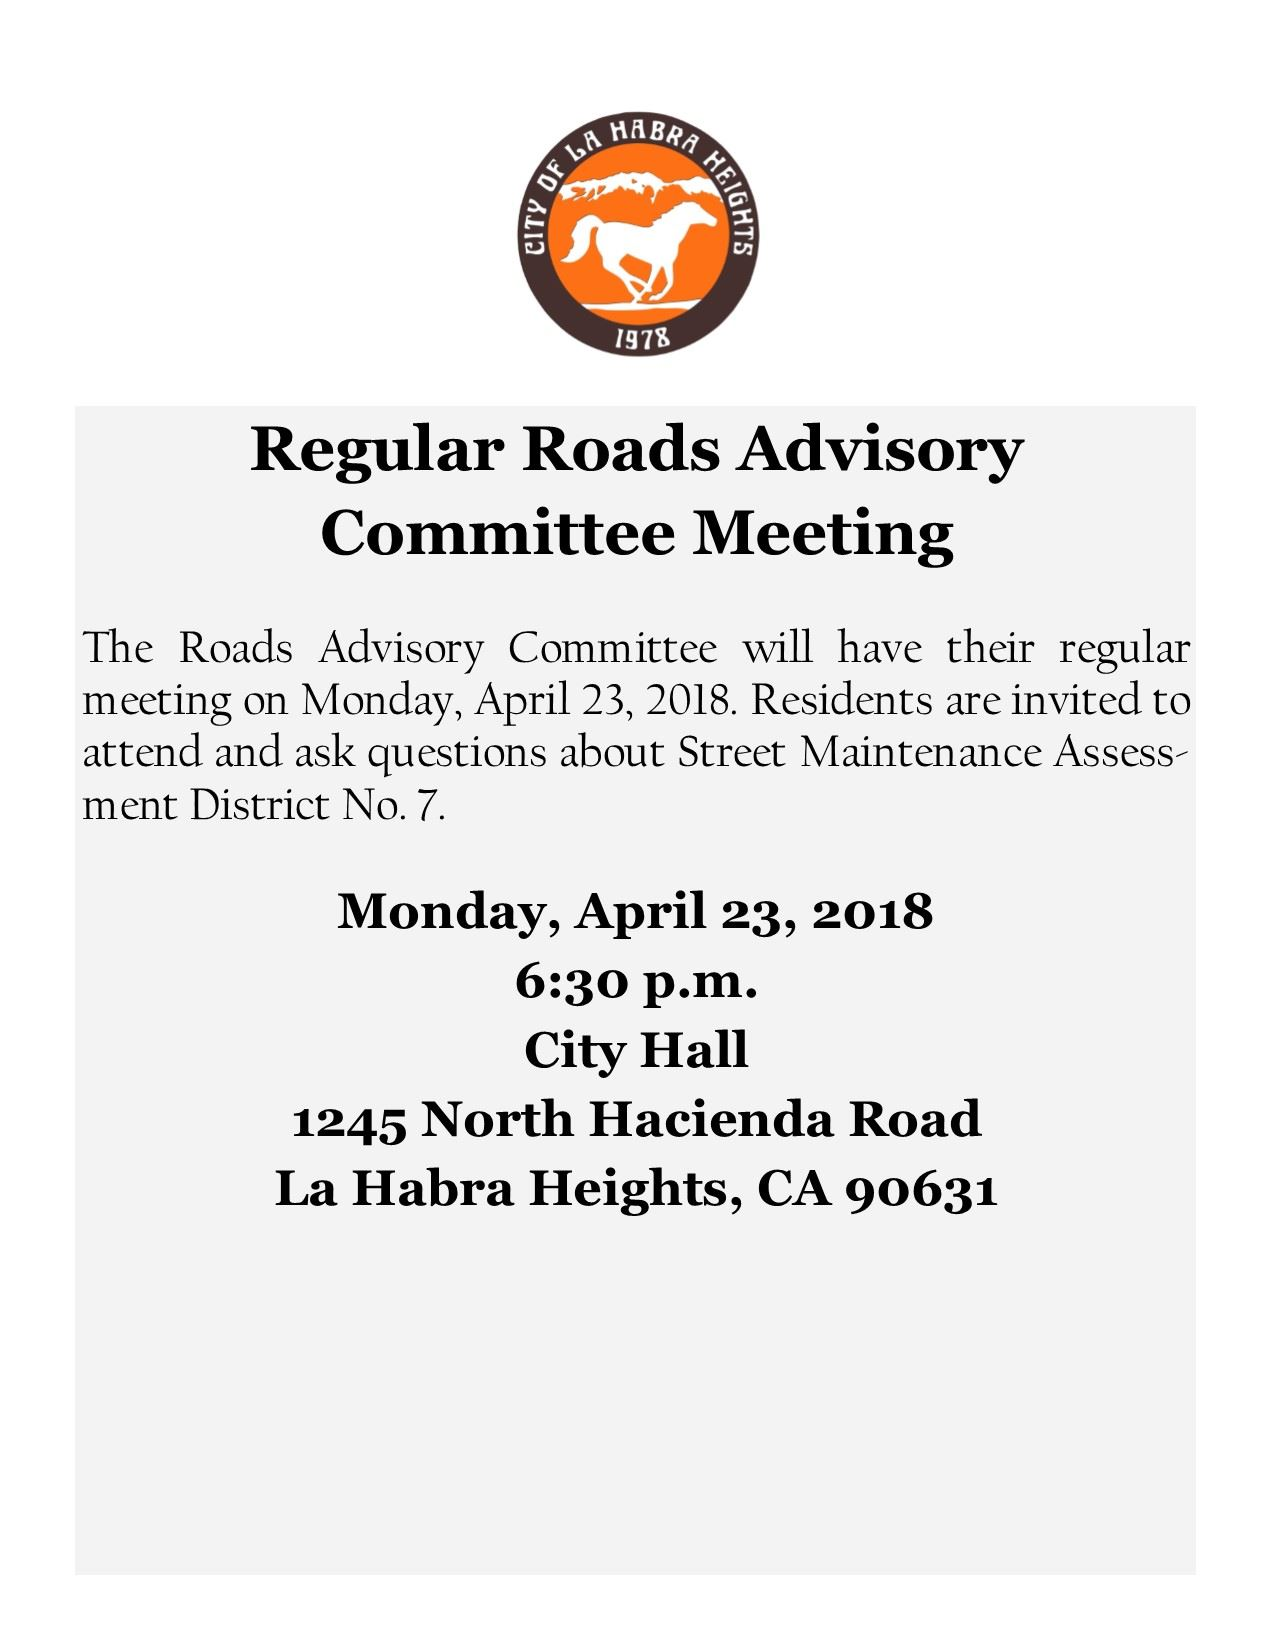 2018 04 23 Regular Roads Advisory Committee Meeting Flyer